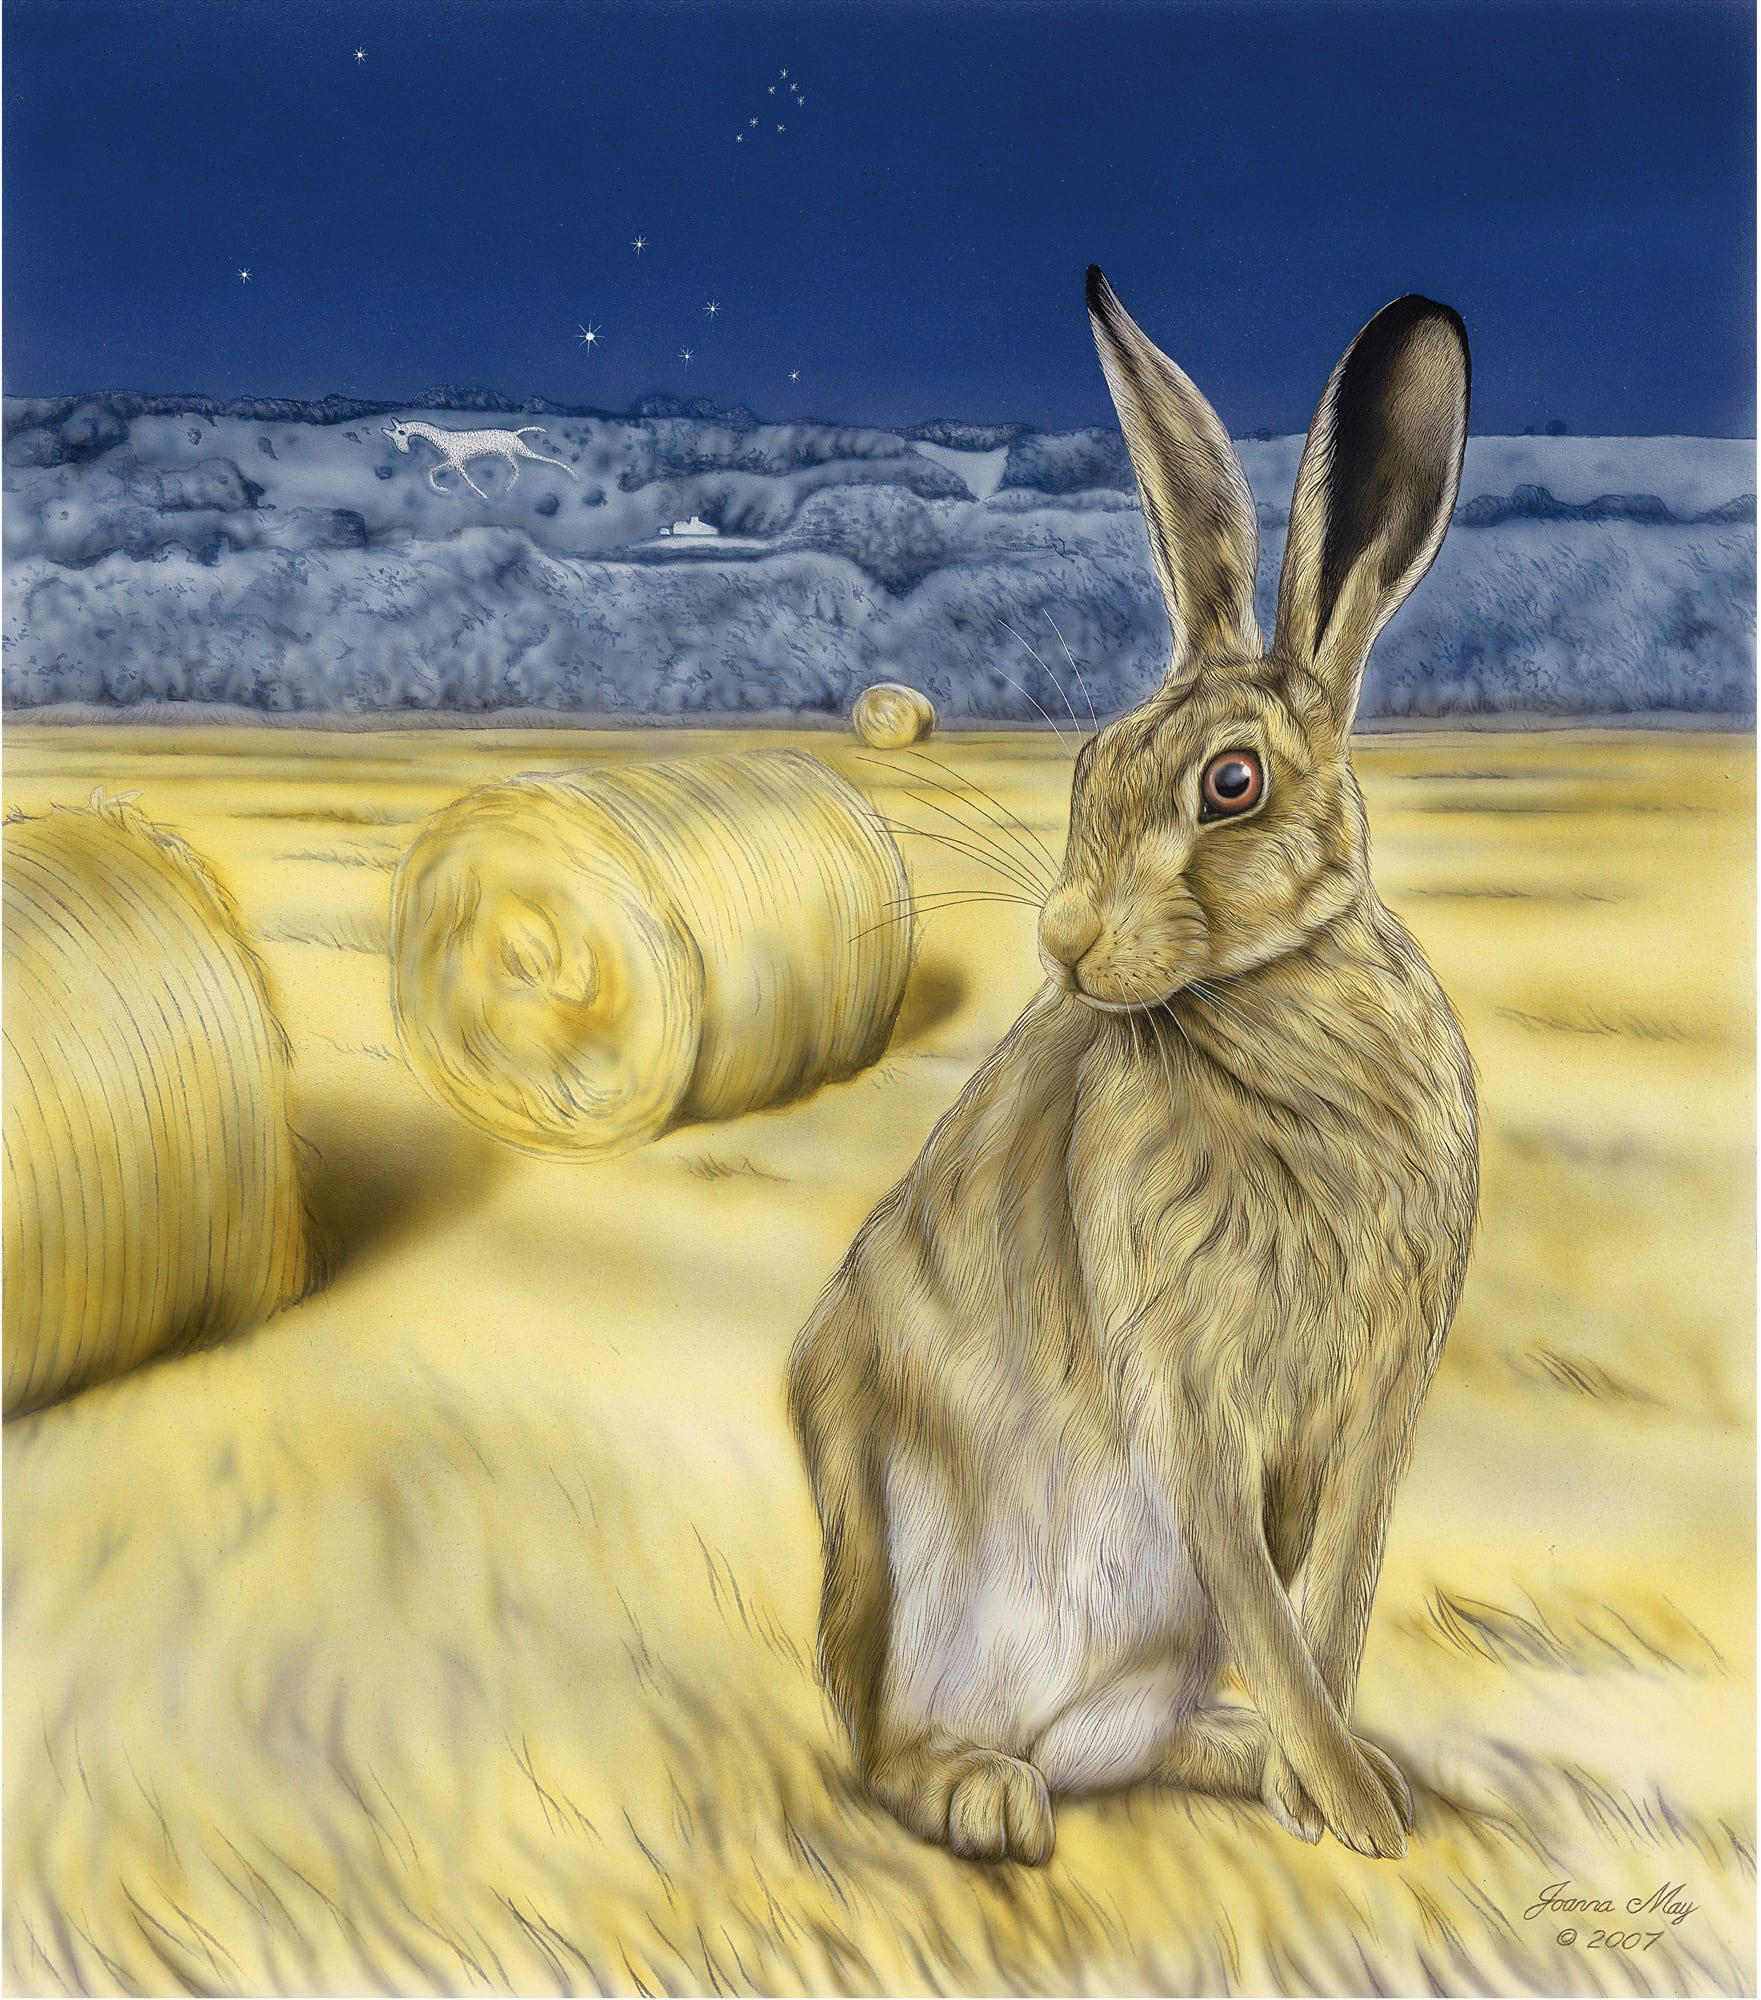 Broadtown Hare - a painting by Joanna May. A Hare is sat in a field, in the backgroung are round bales of straw. Beyond the field is a hill, with a white horse. In the night sky above, stars are shining.